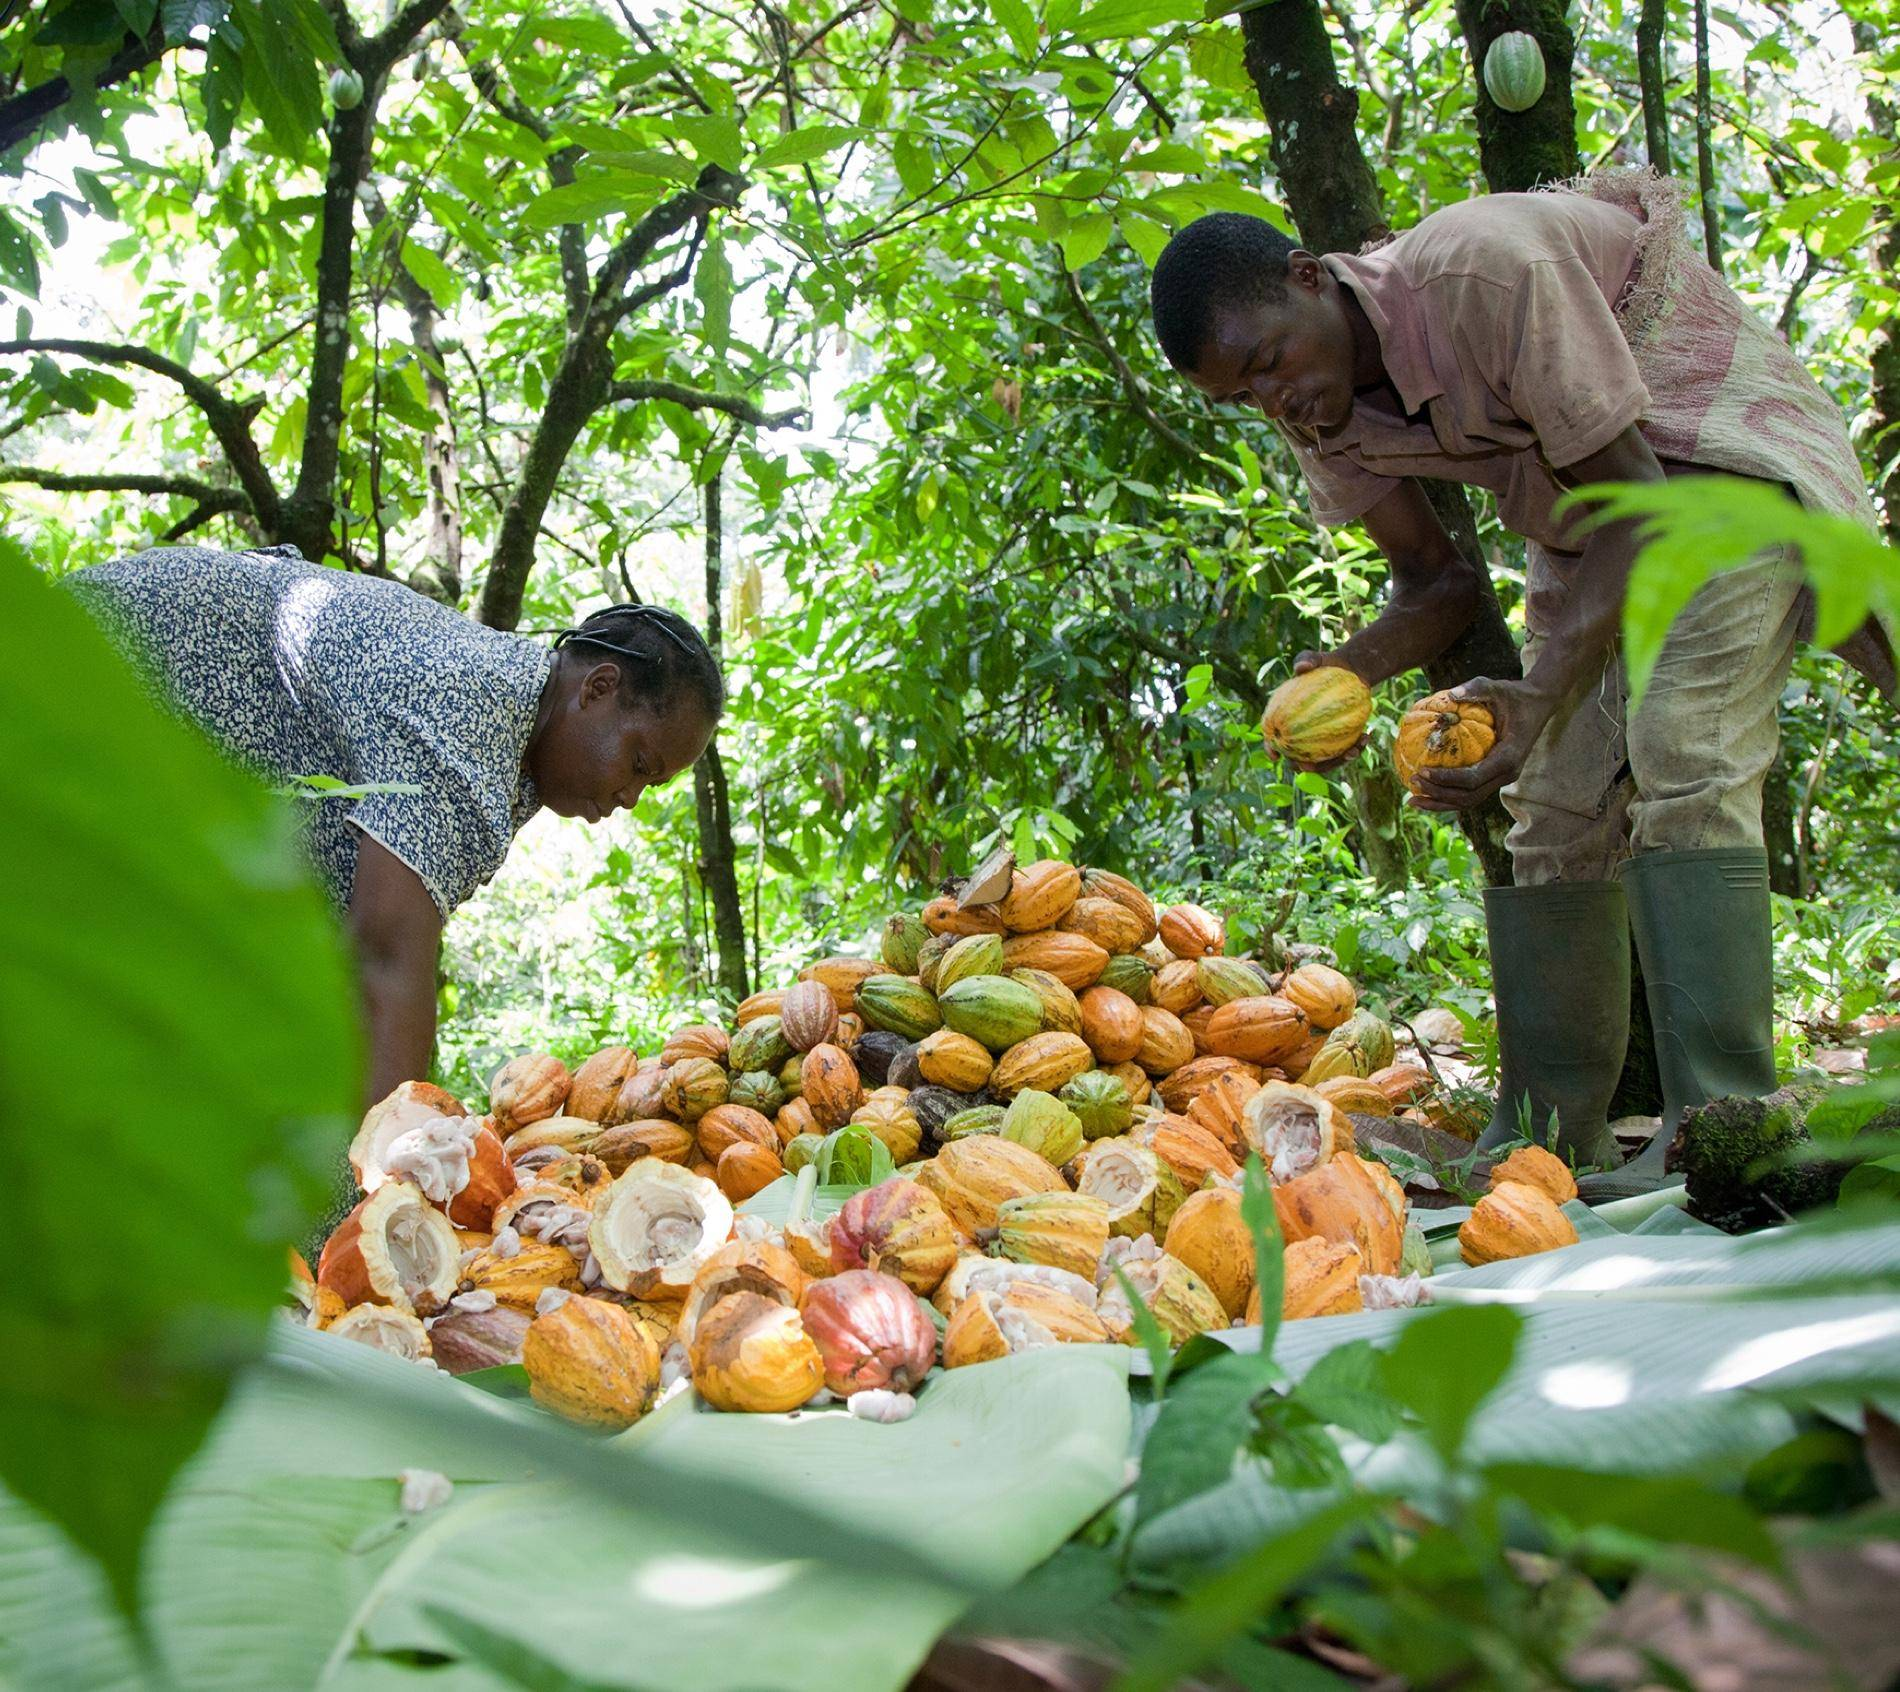 cacaofruit farmers collecting cacaofruits